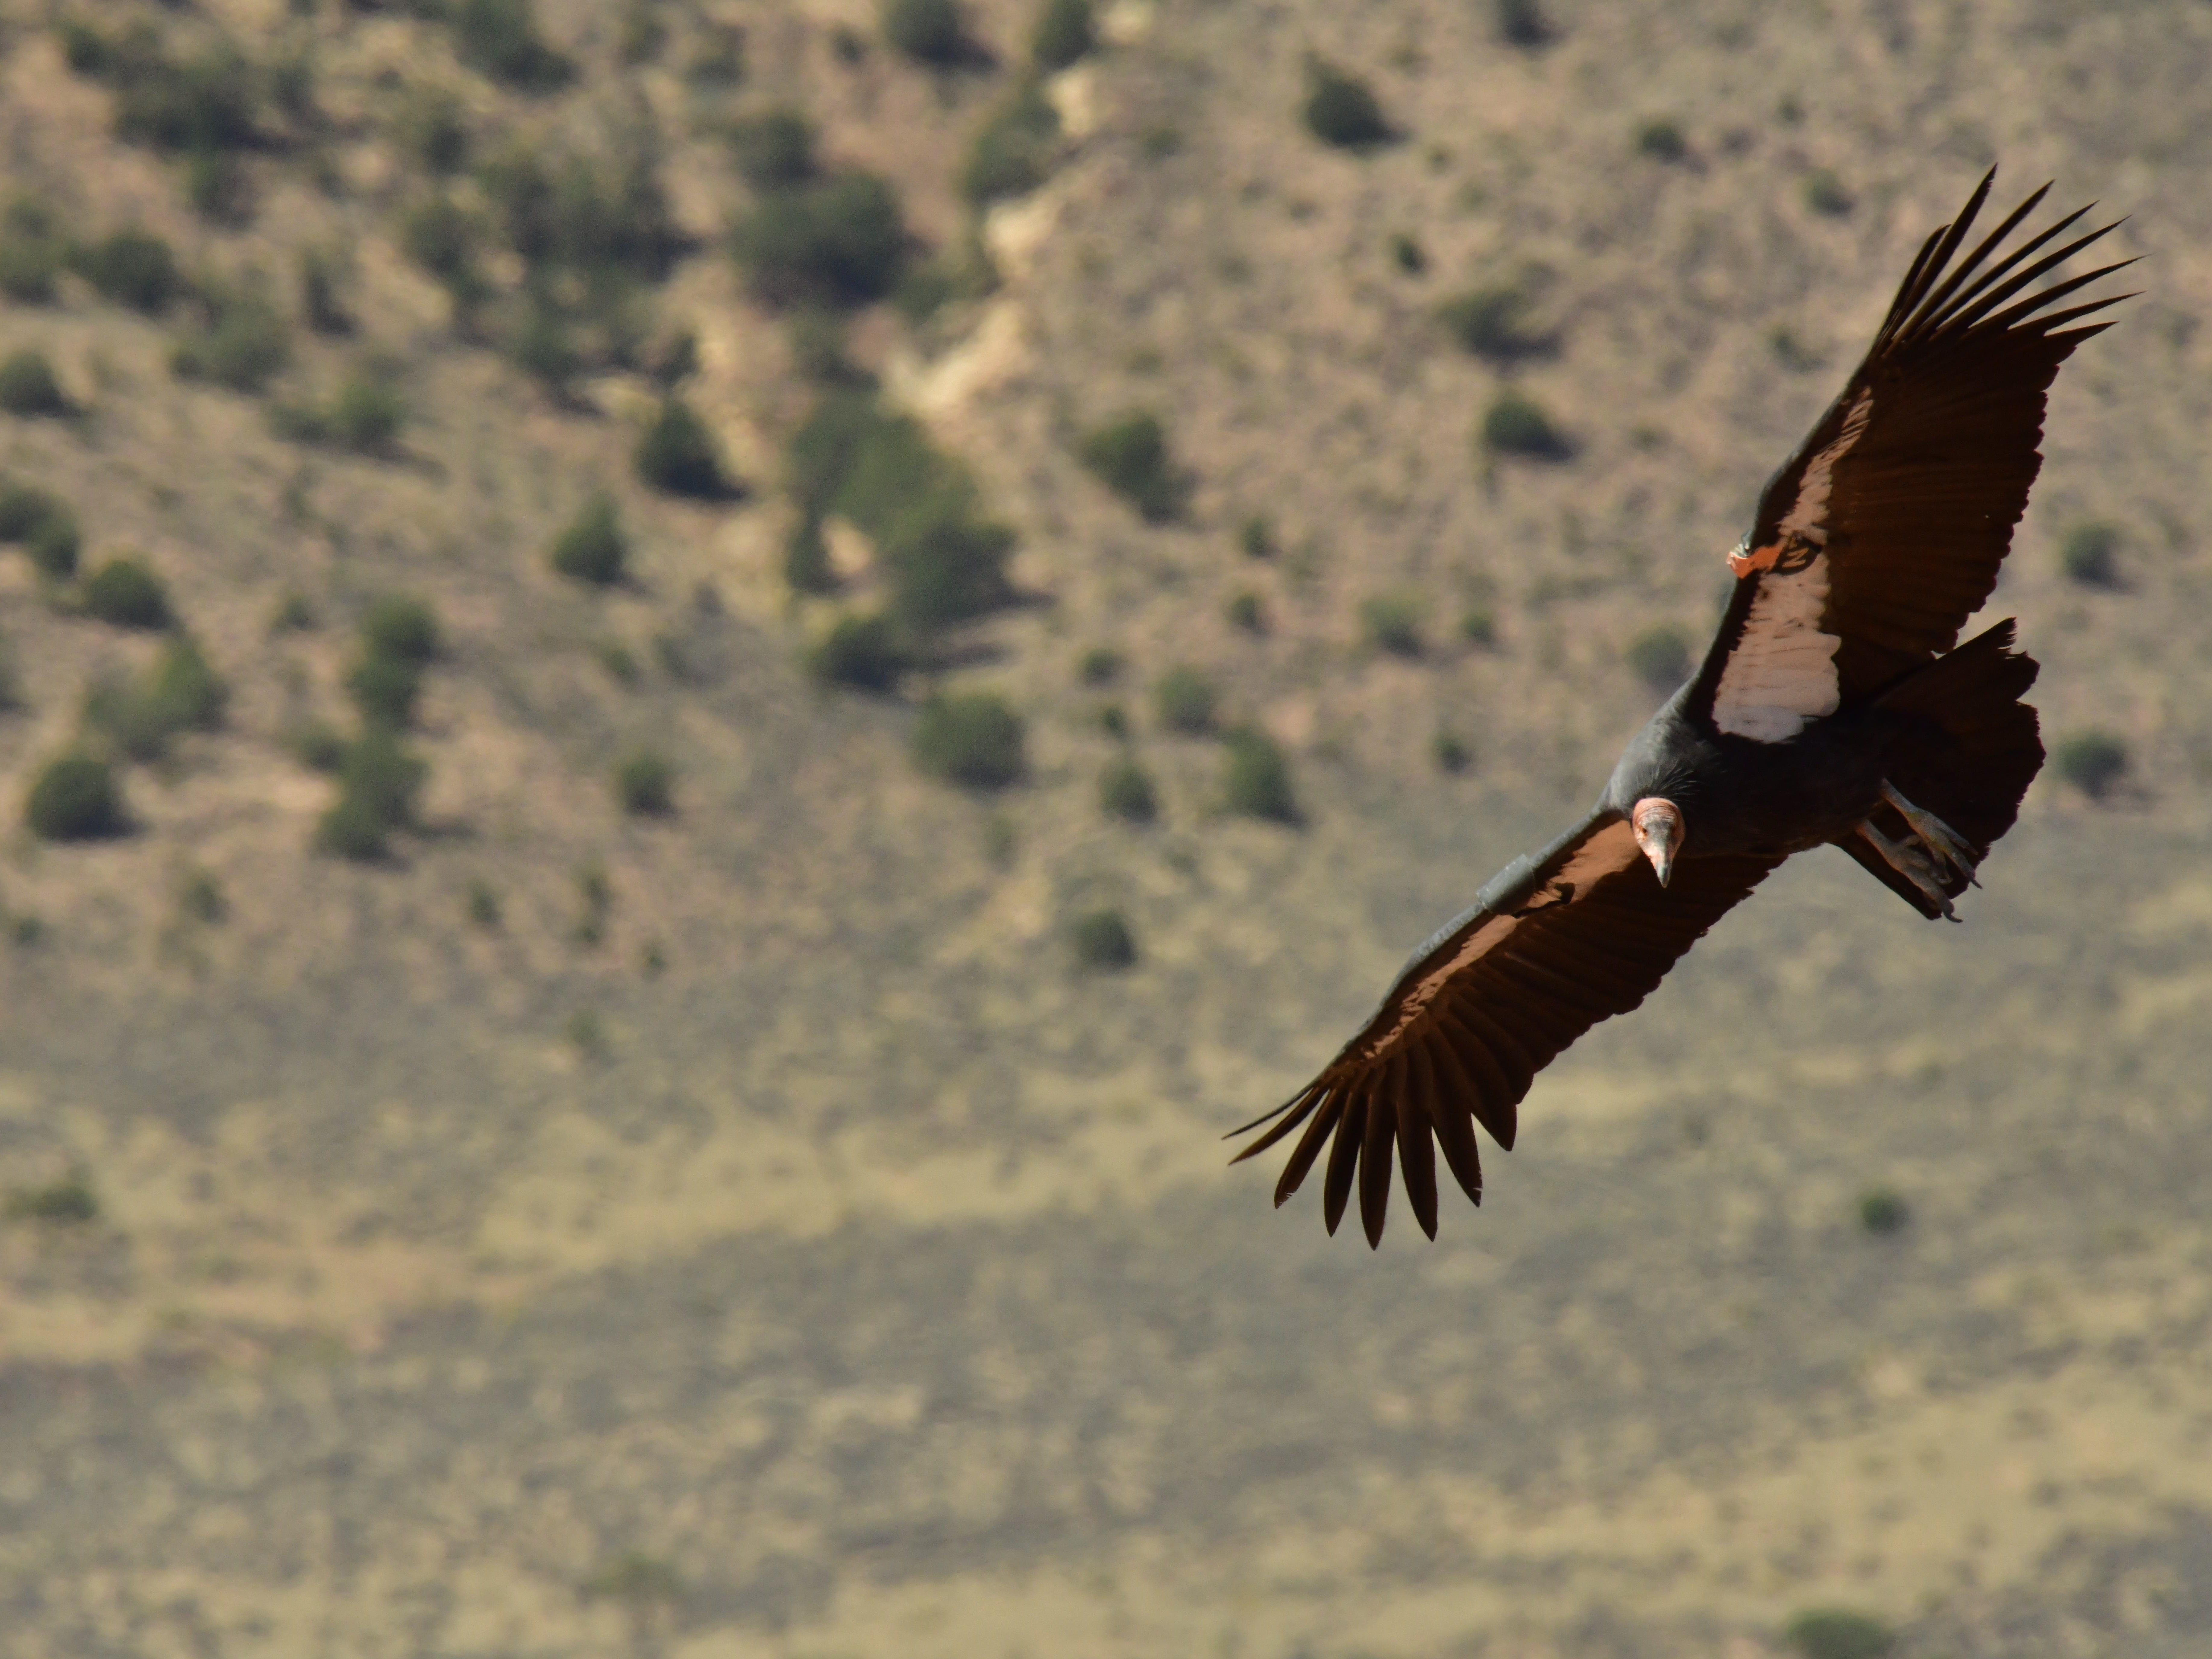 A California condor flies through the air at Vermilion Cliffs National Monument on Sept. 22, 2018.